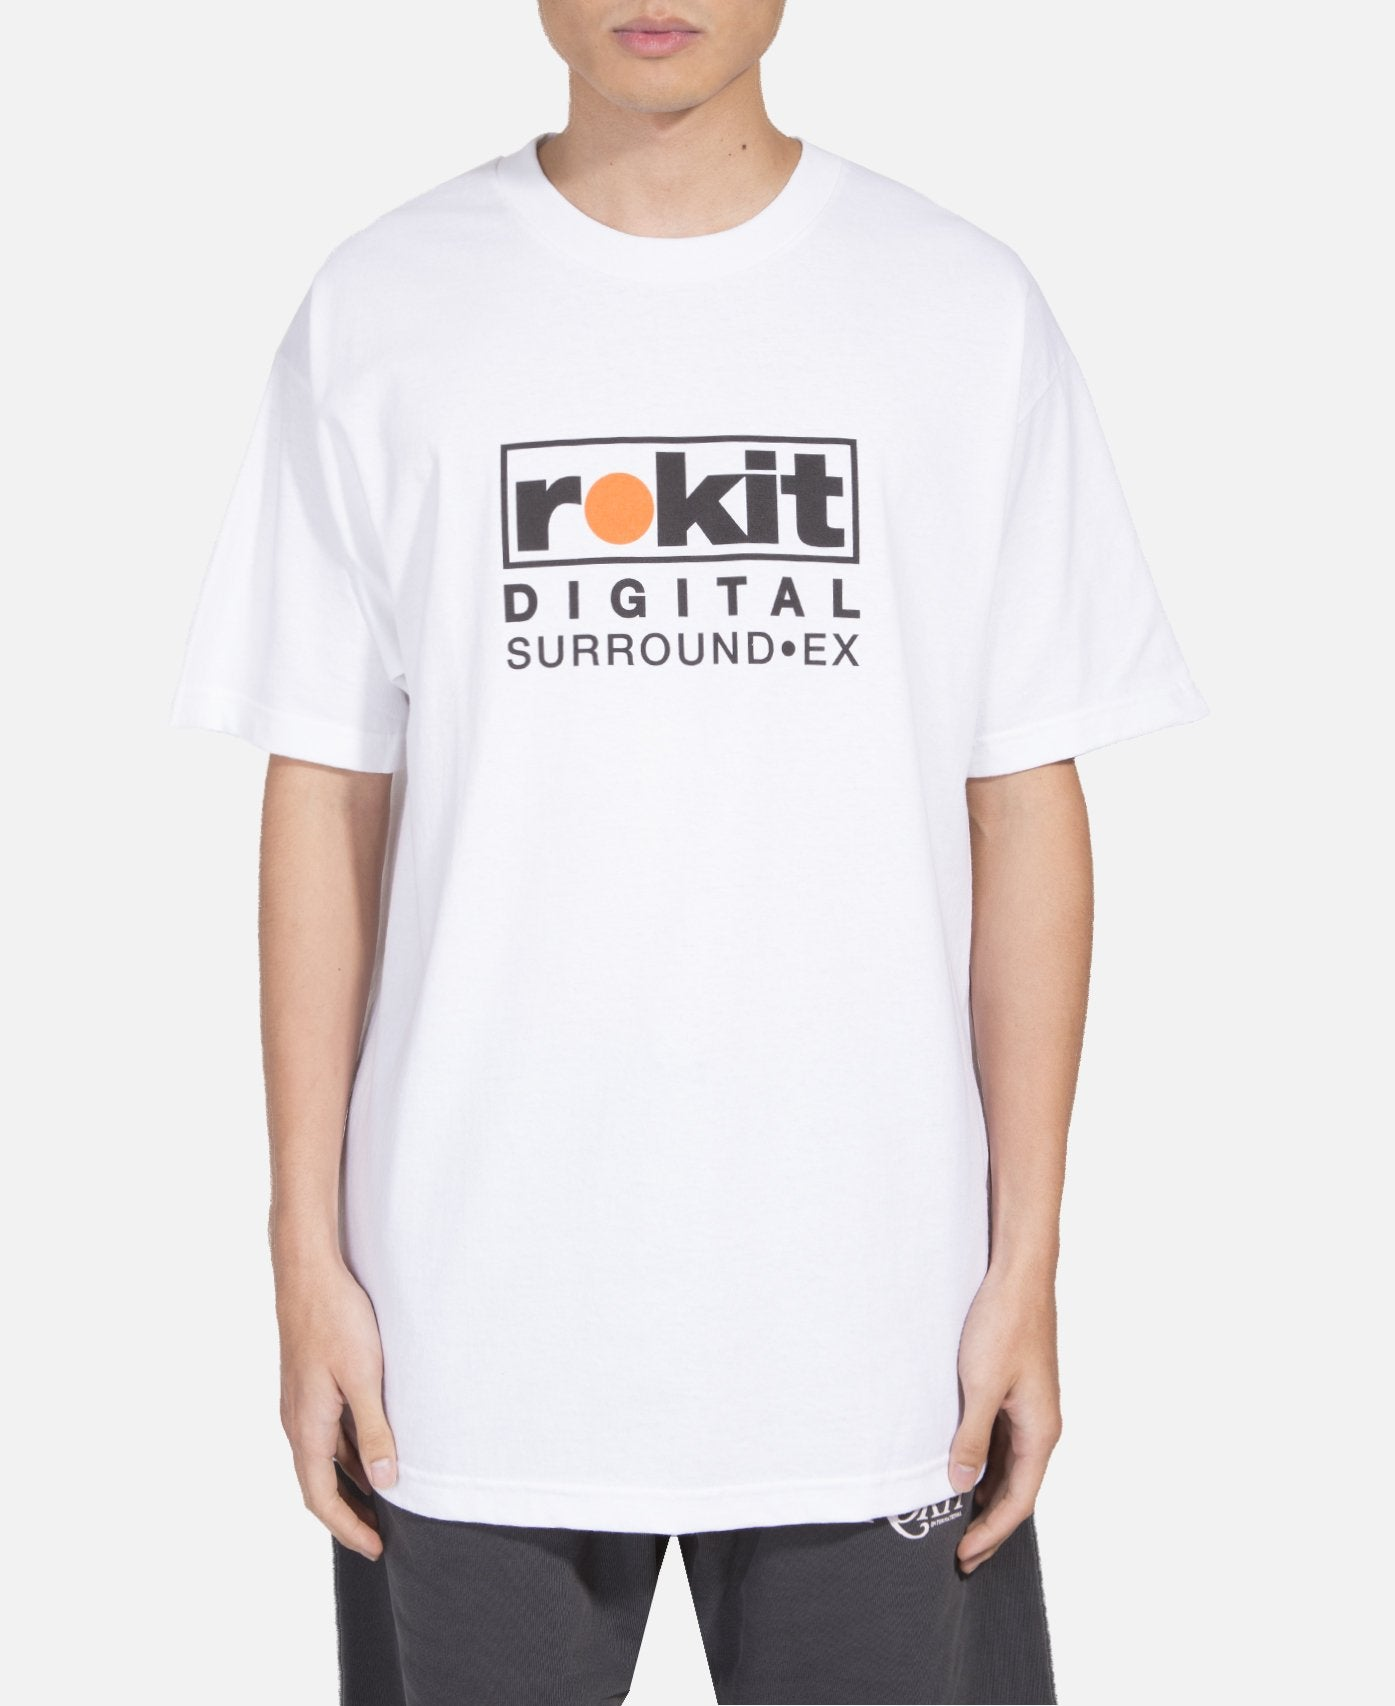 Digital S/S T-Shirt